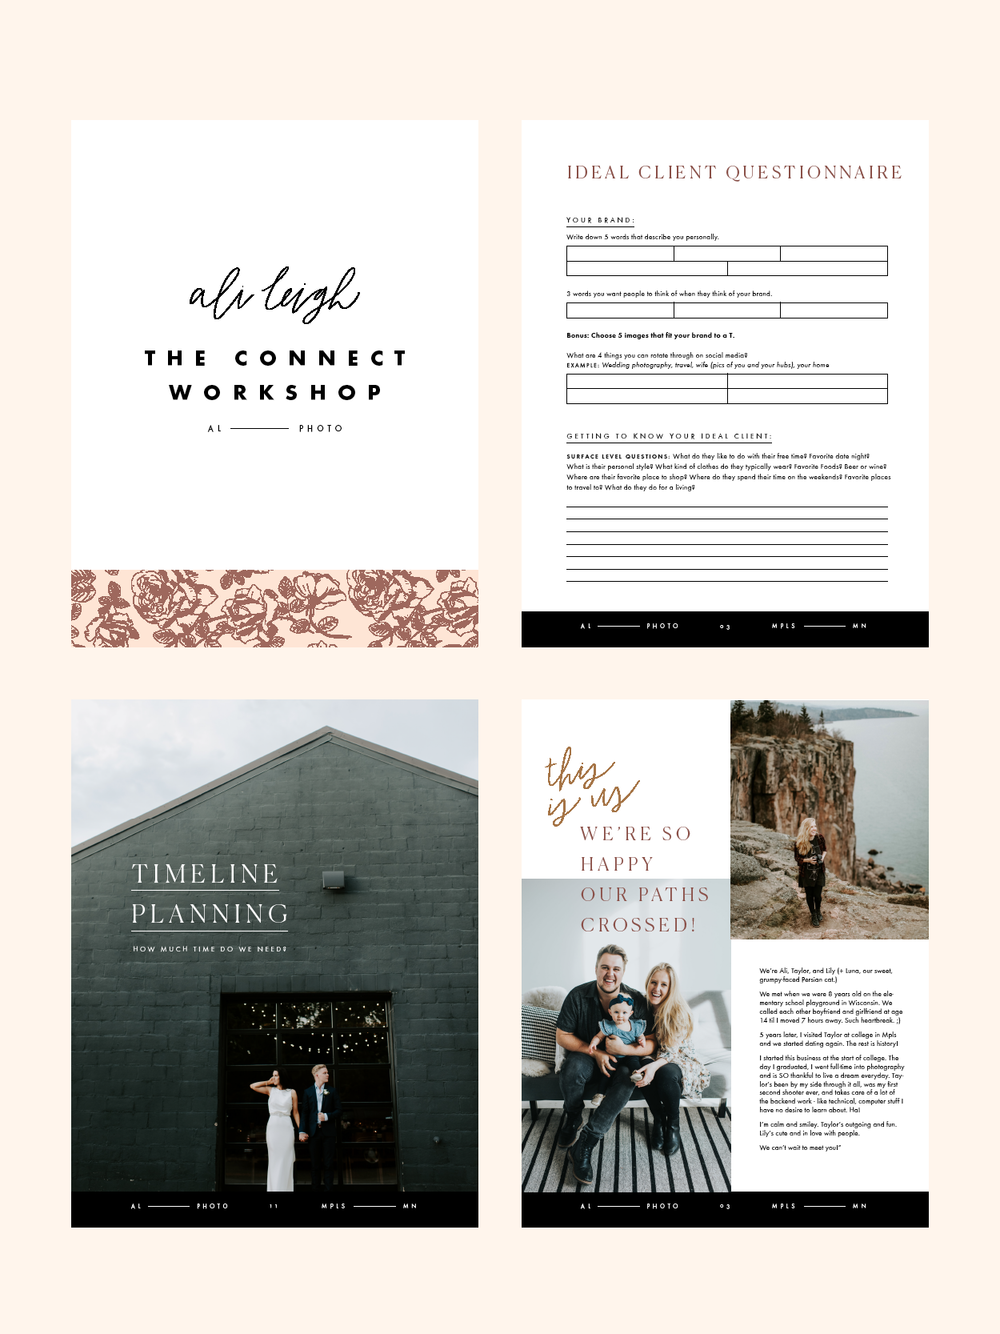 ali-leigh-photo-branding-logo-design-identity-handlettering-modern-circle-homepage-squarespace-workshop2.png